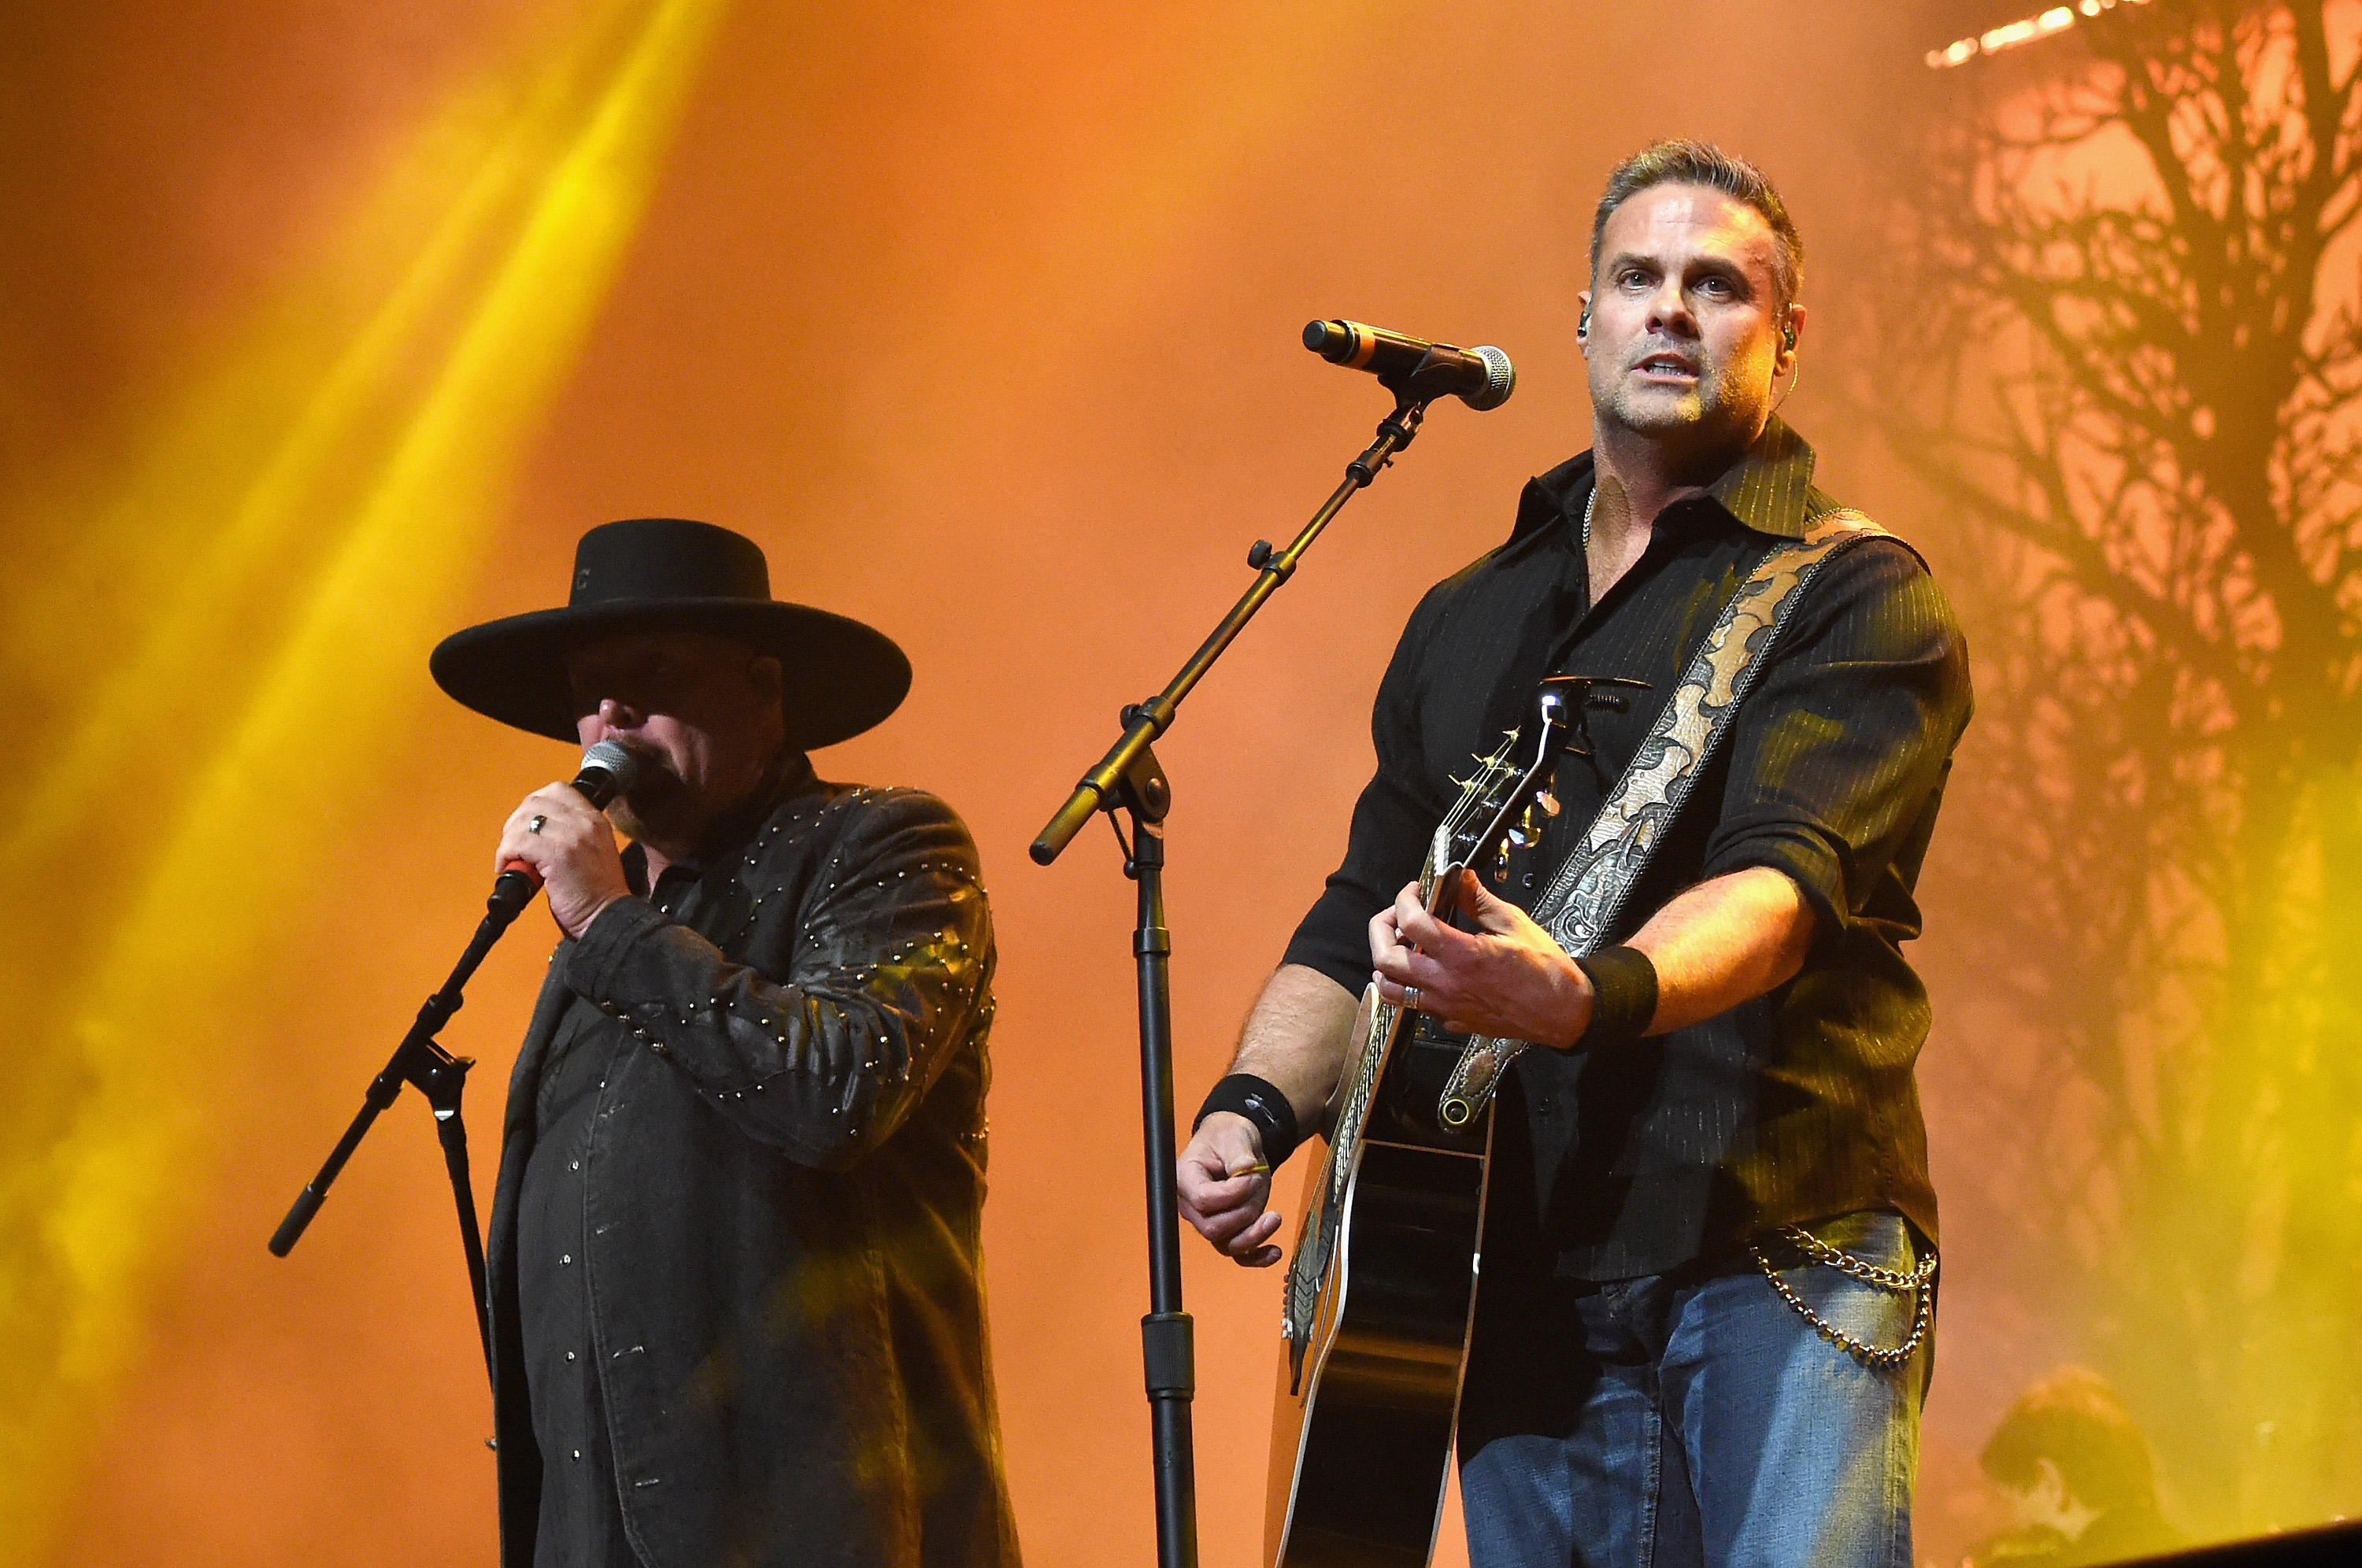 Troy Gentry was one of two men killed in NJ helicopter crash